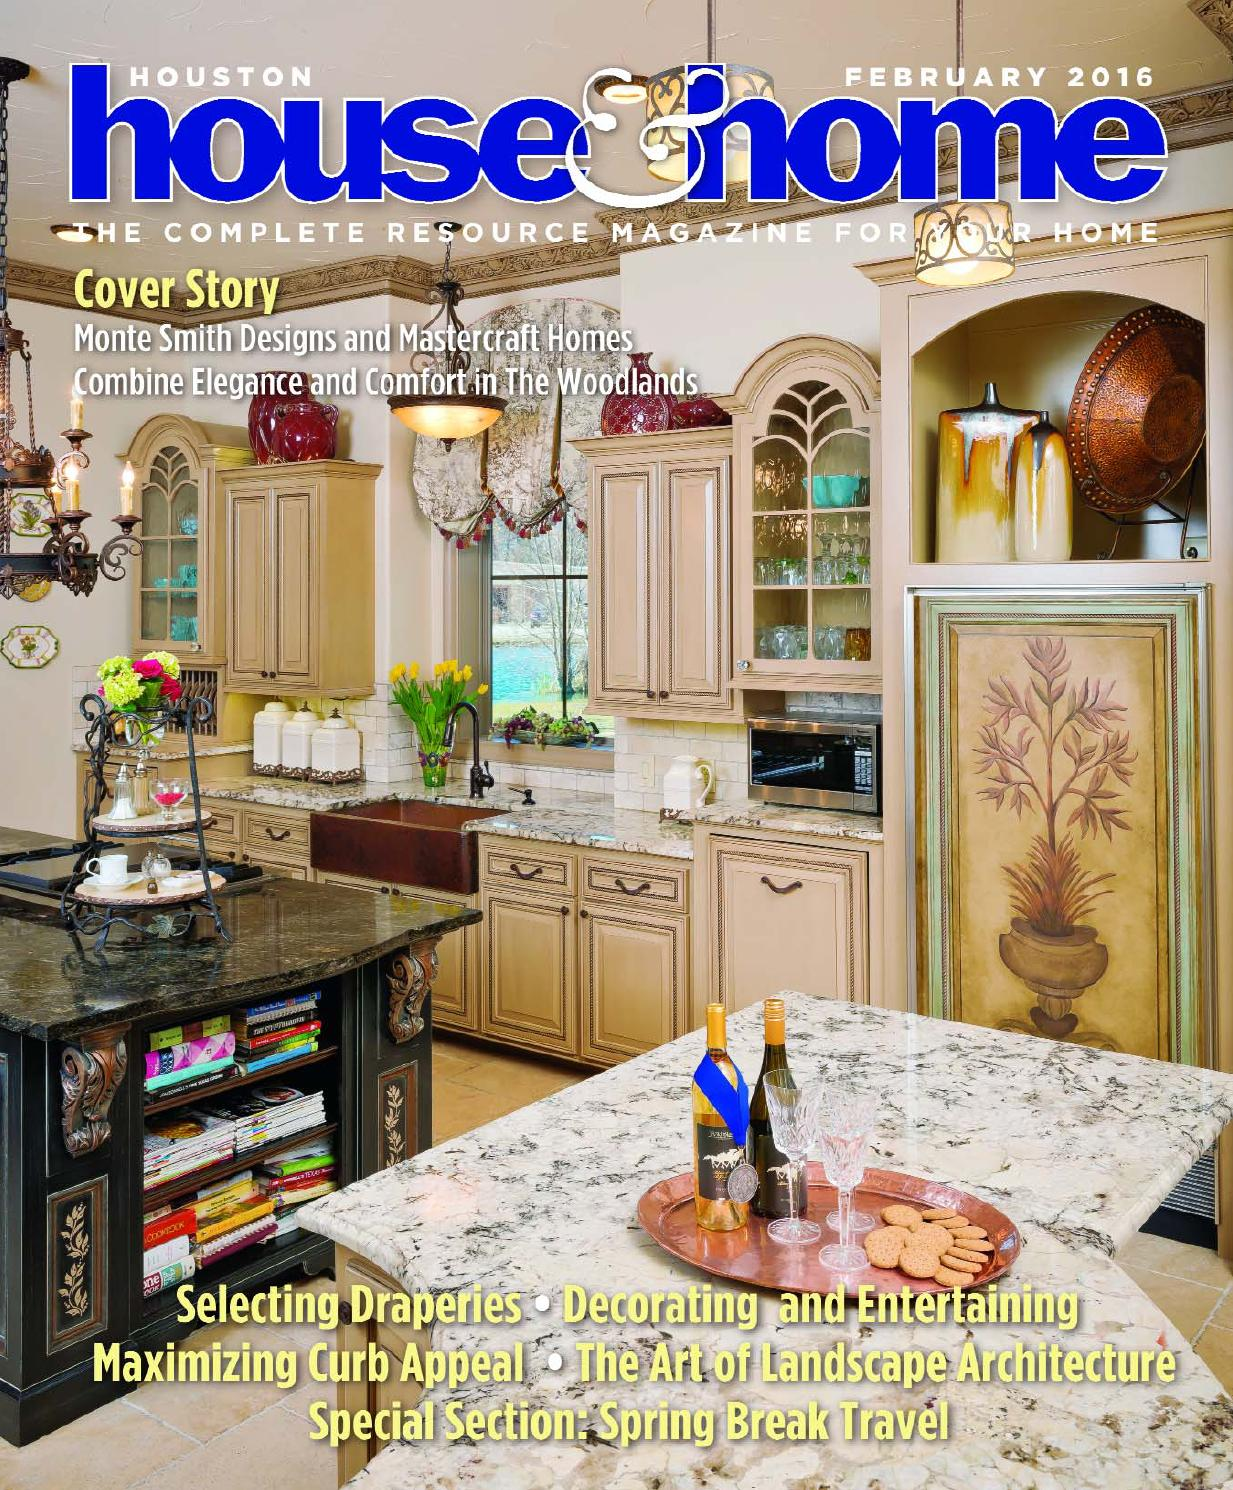 0216 houhousehome vir by houston house home magazine issuu On classic house 1993